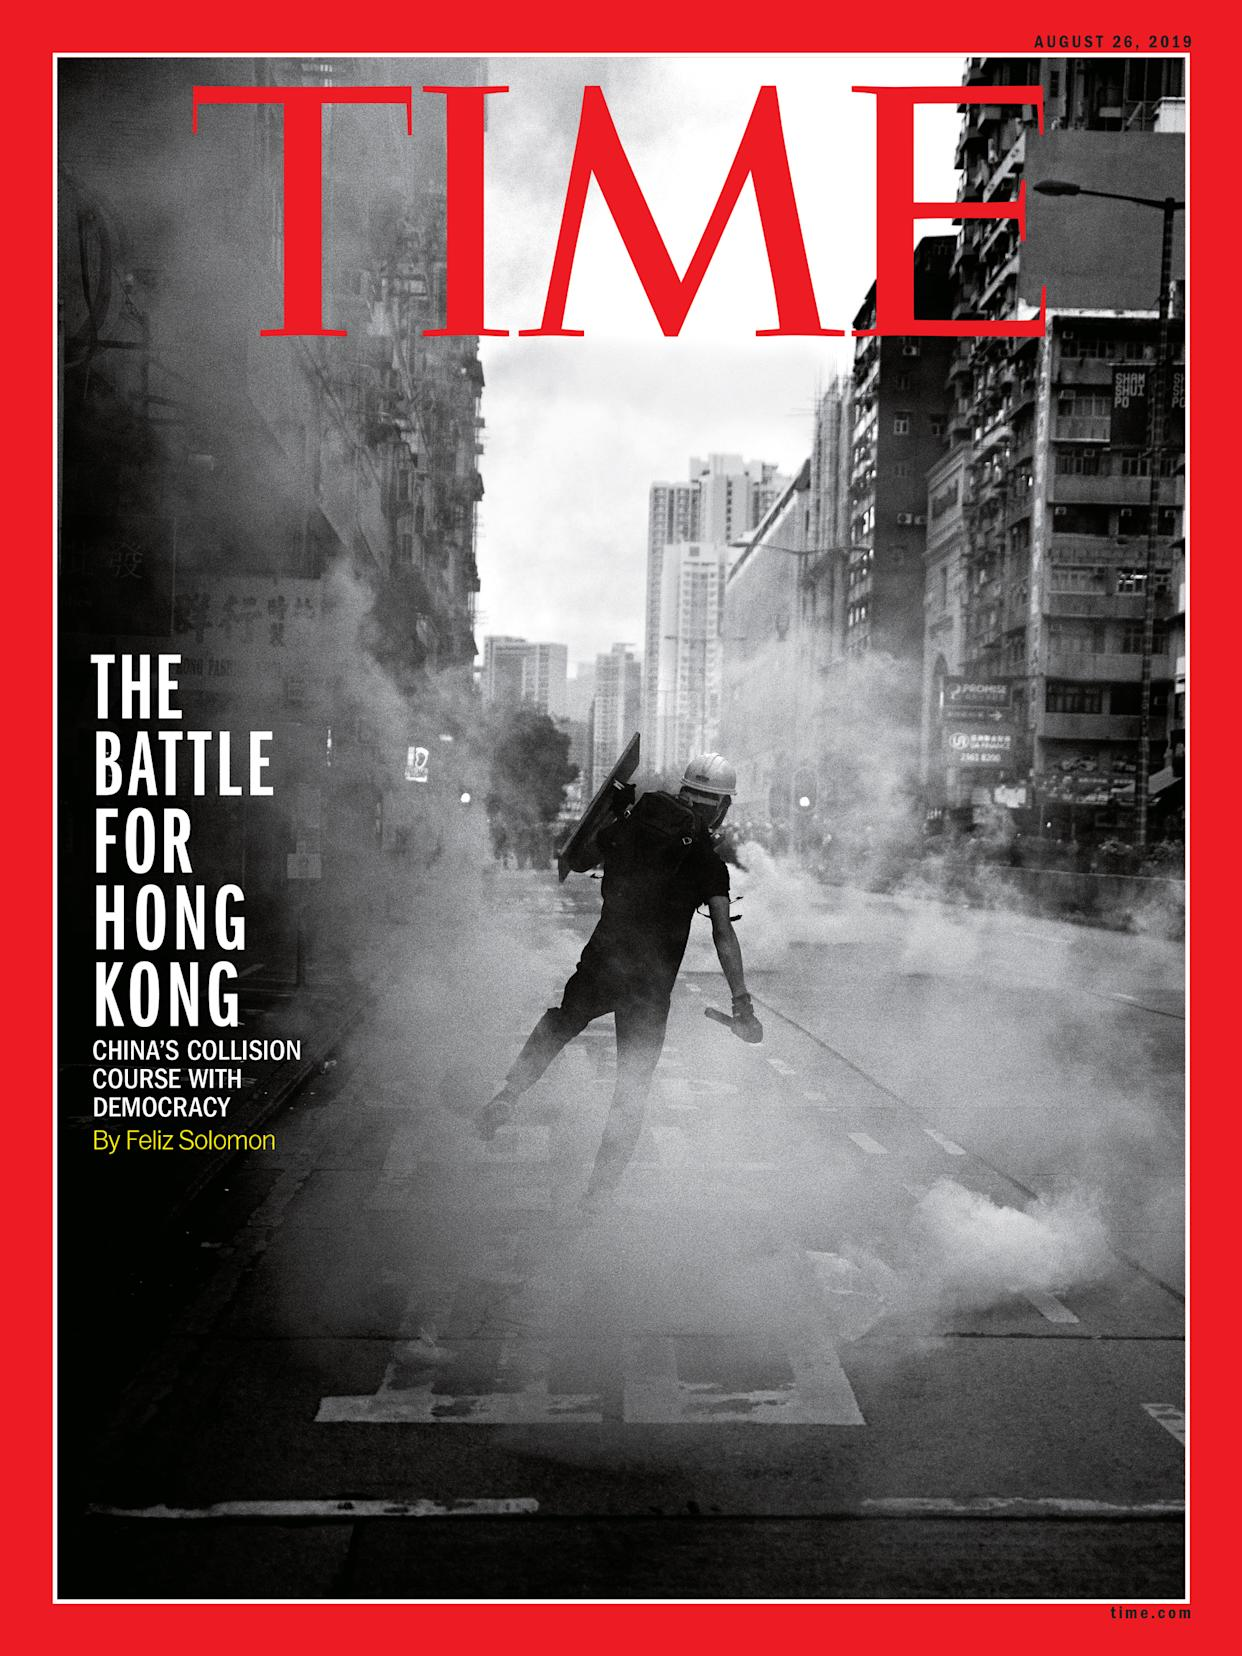 Photograph by Adam Ferguson for TIME